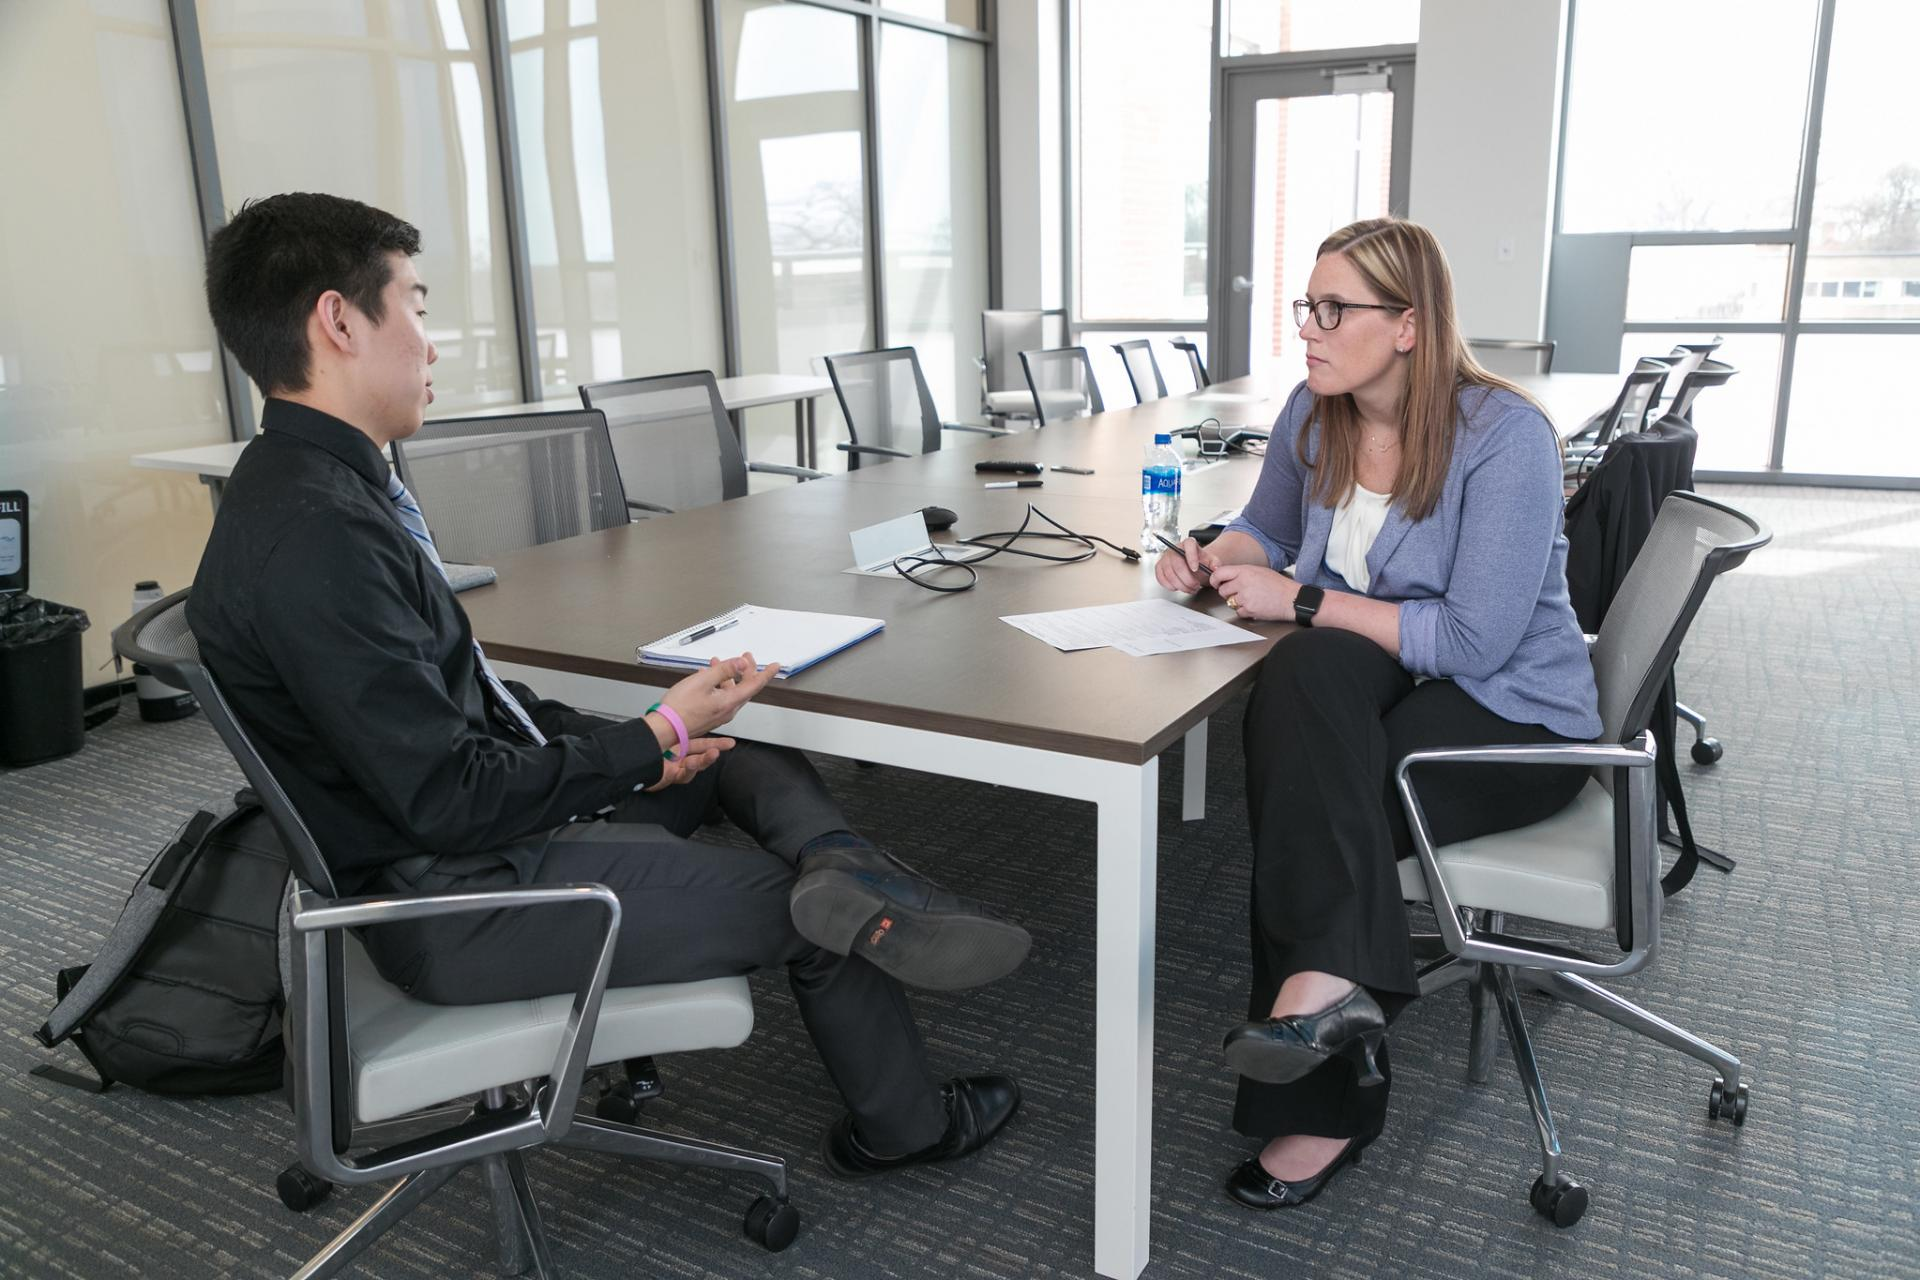 North Central College student Nick Moore talks career planning and interview advice with Katie Dornan.